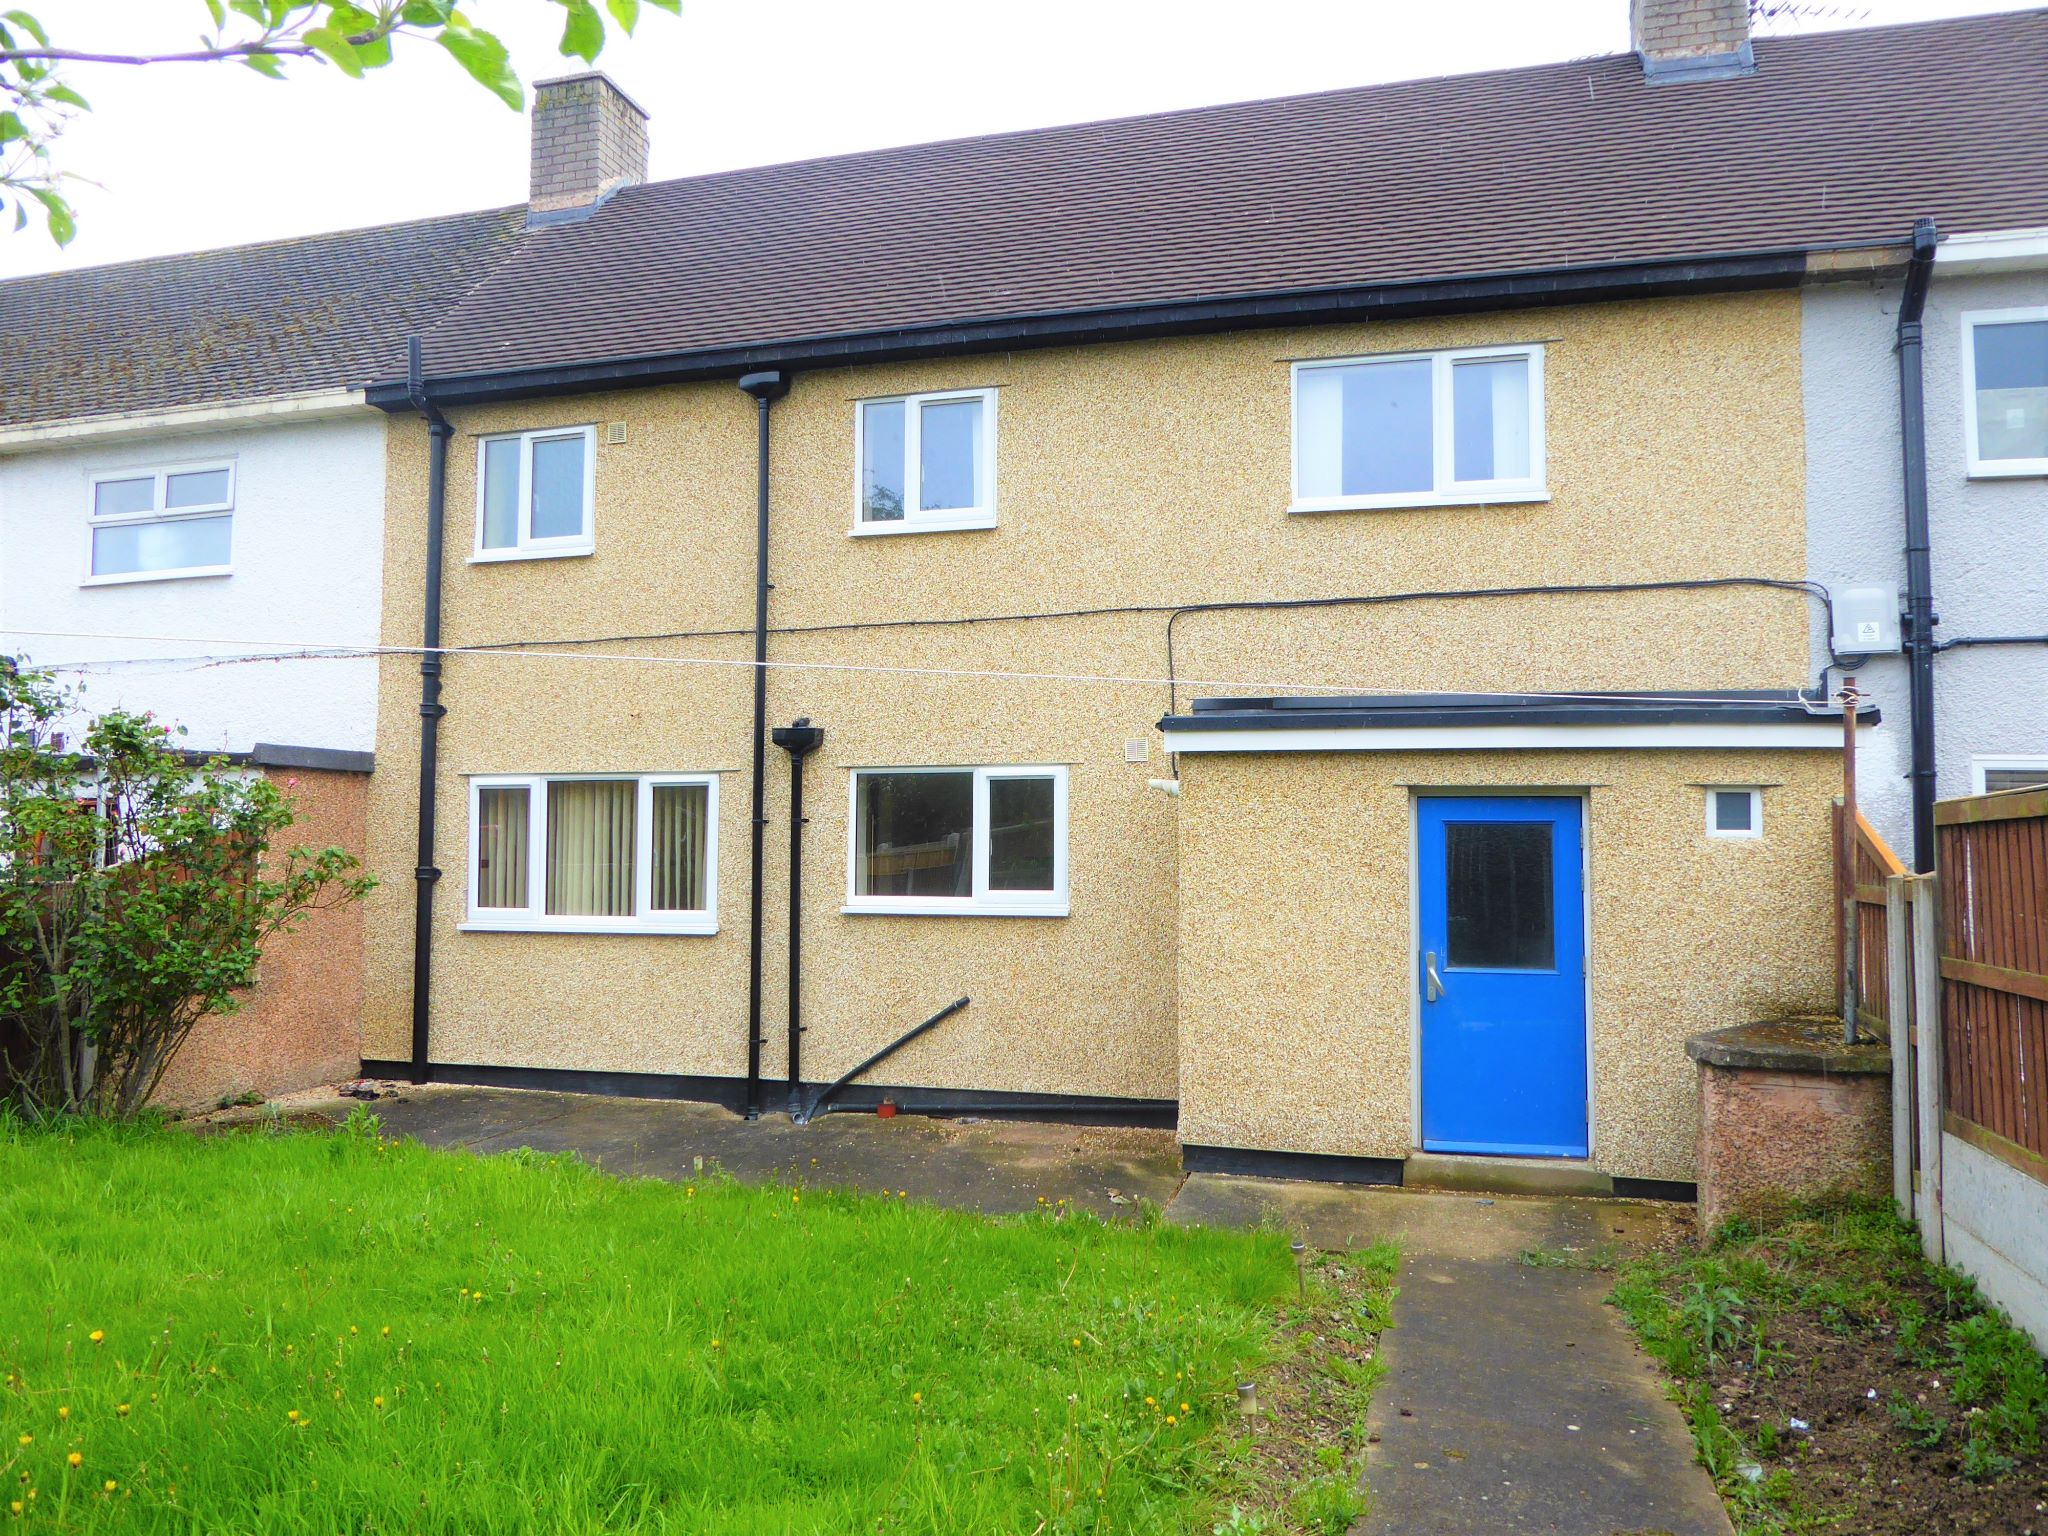 3 bedroom mid terraced house SSTC in Abergele - Photograph 11